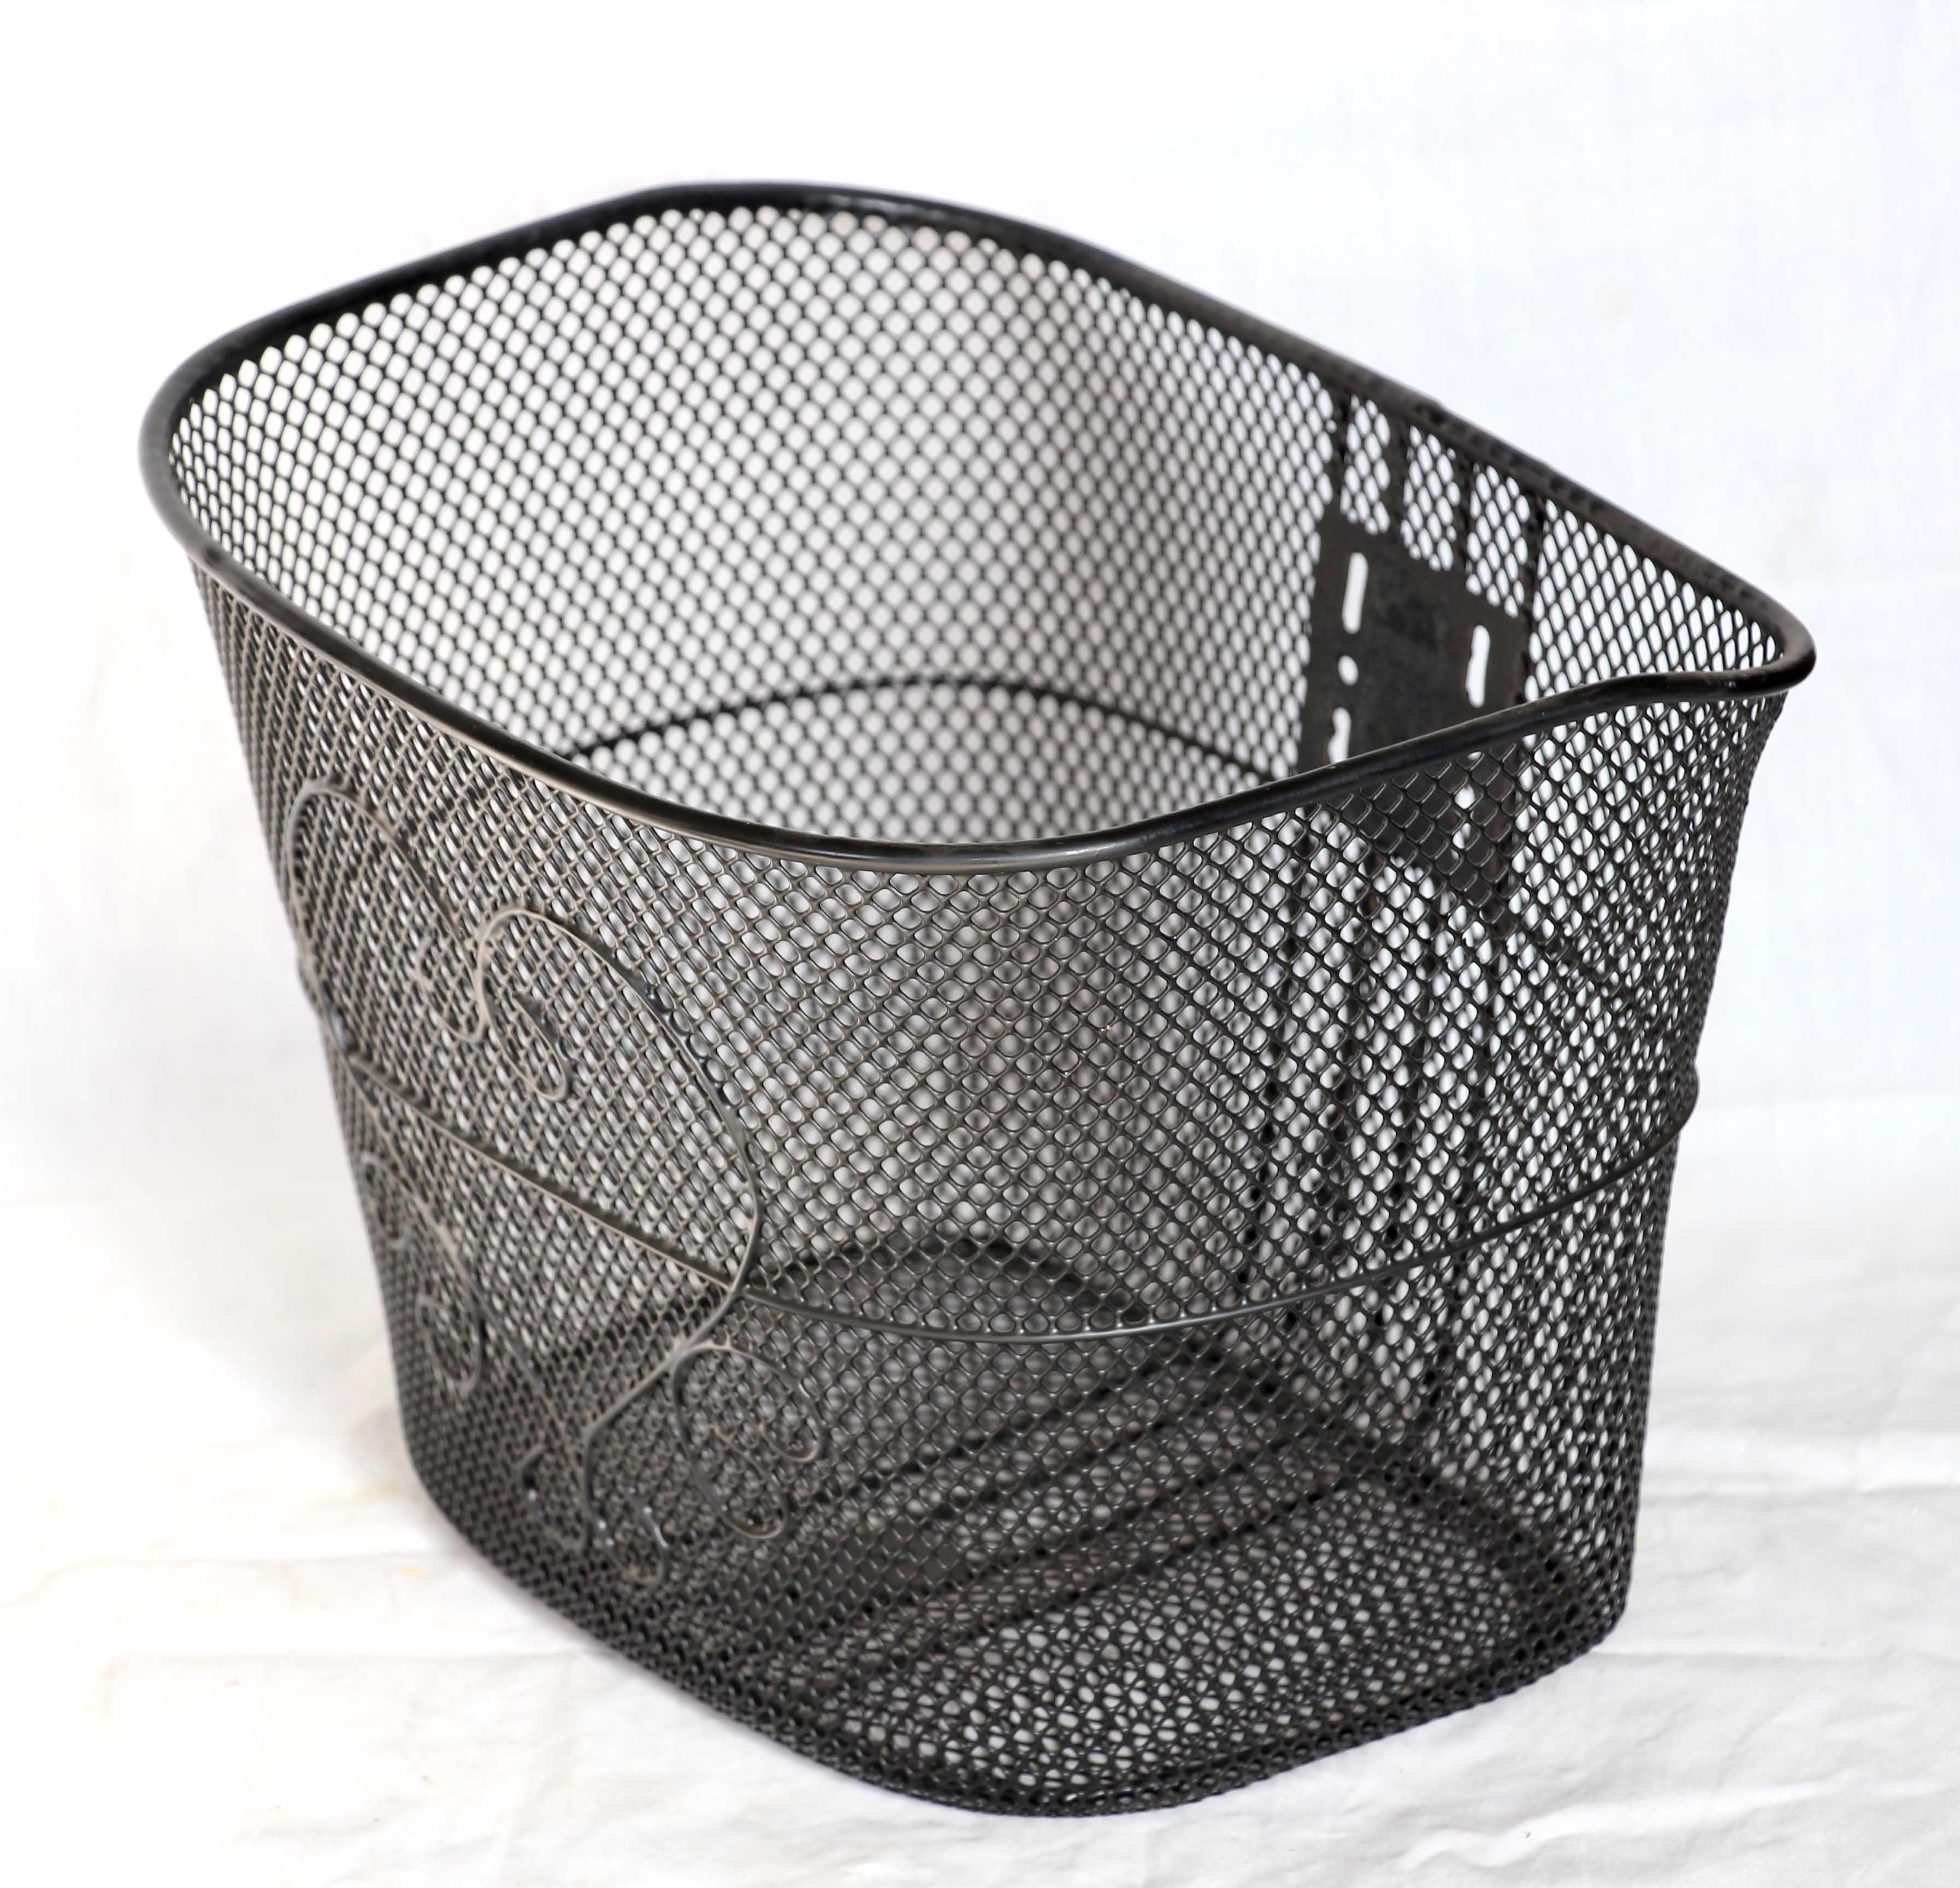 High quality steel wire bicycle basket